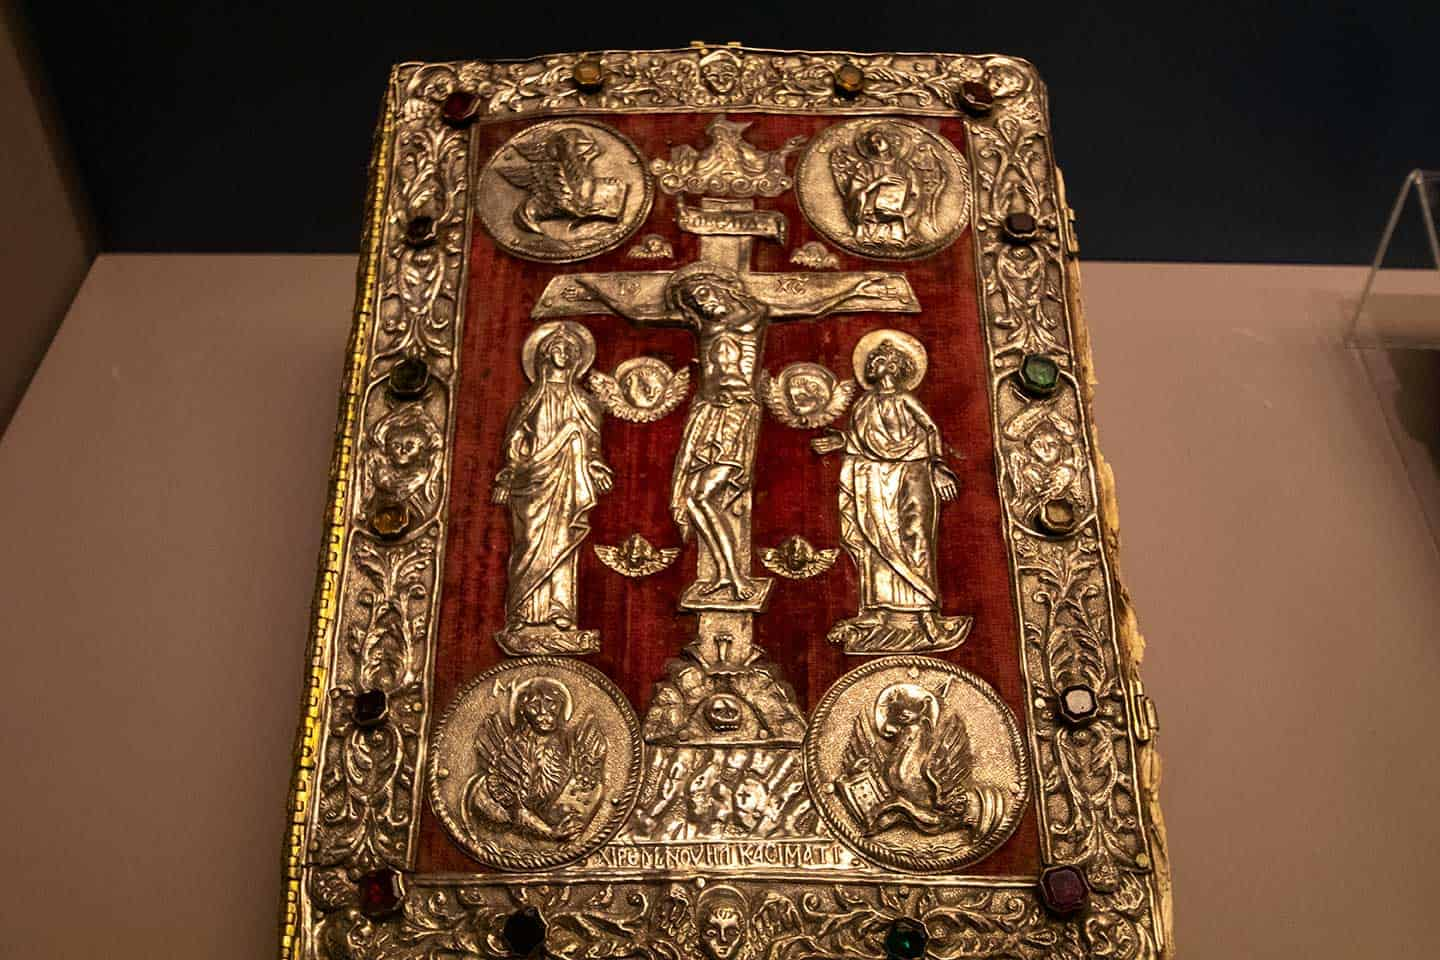 Image of one of the medieval books in the Arkadi monastery museum